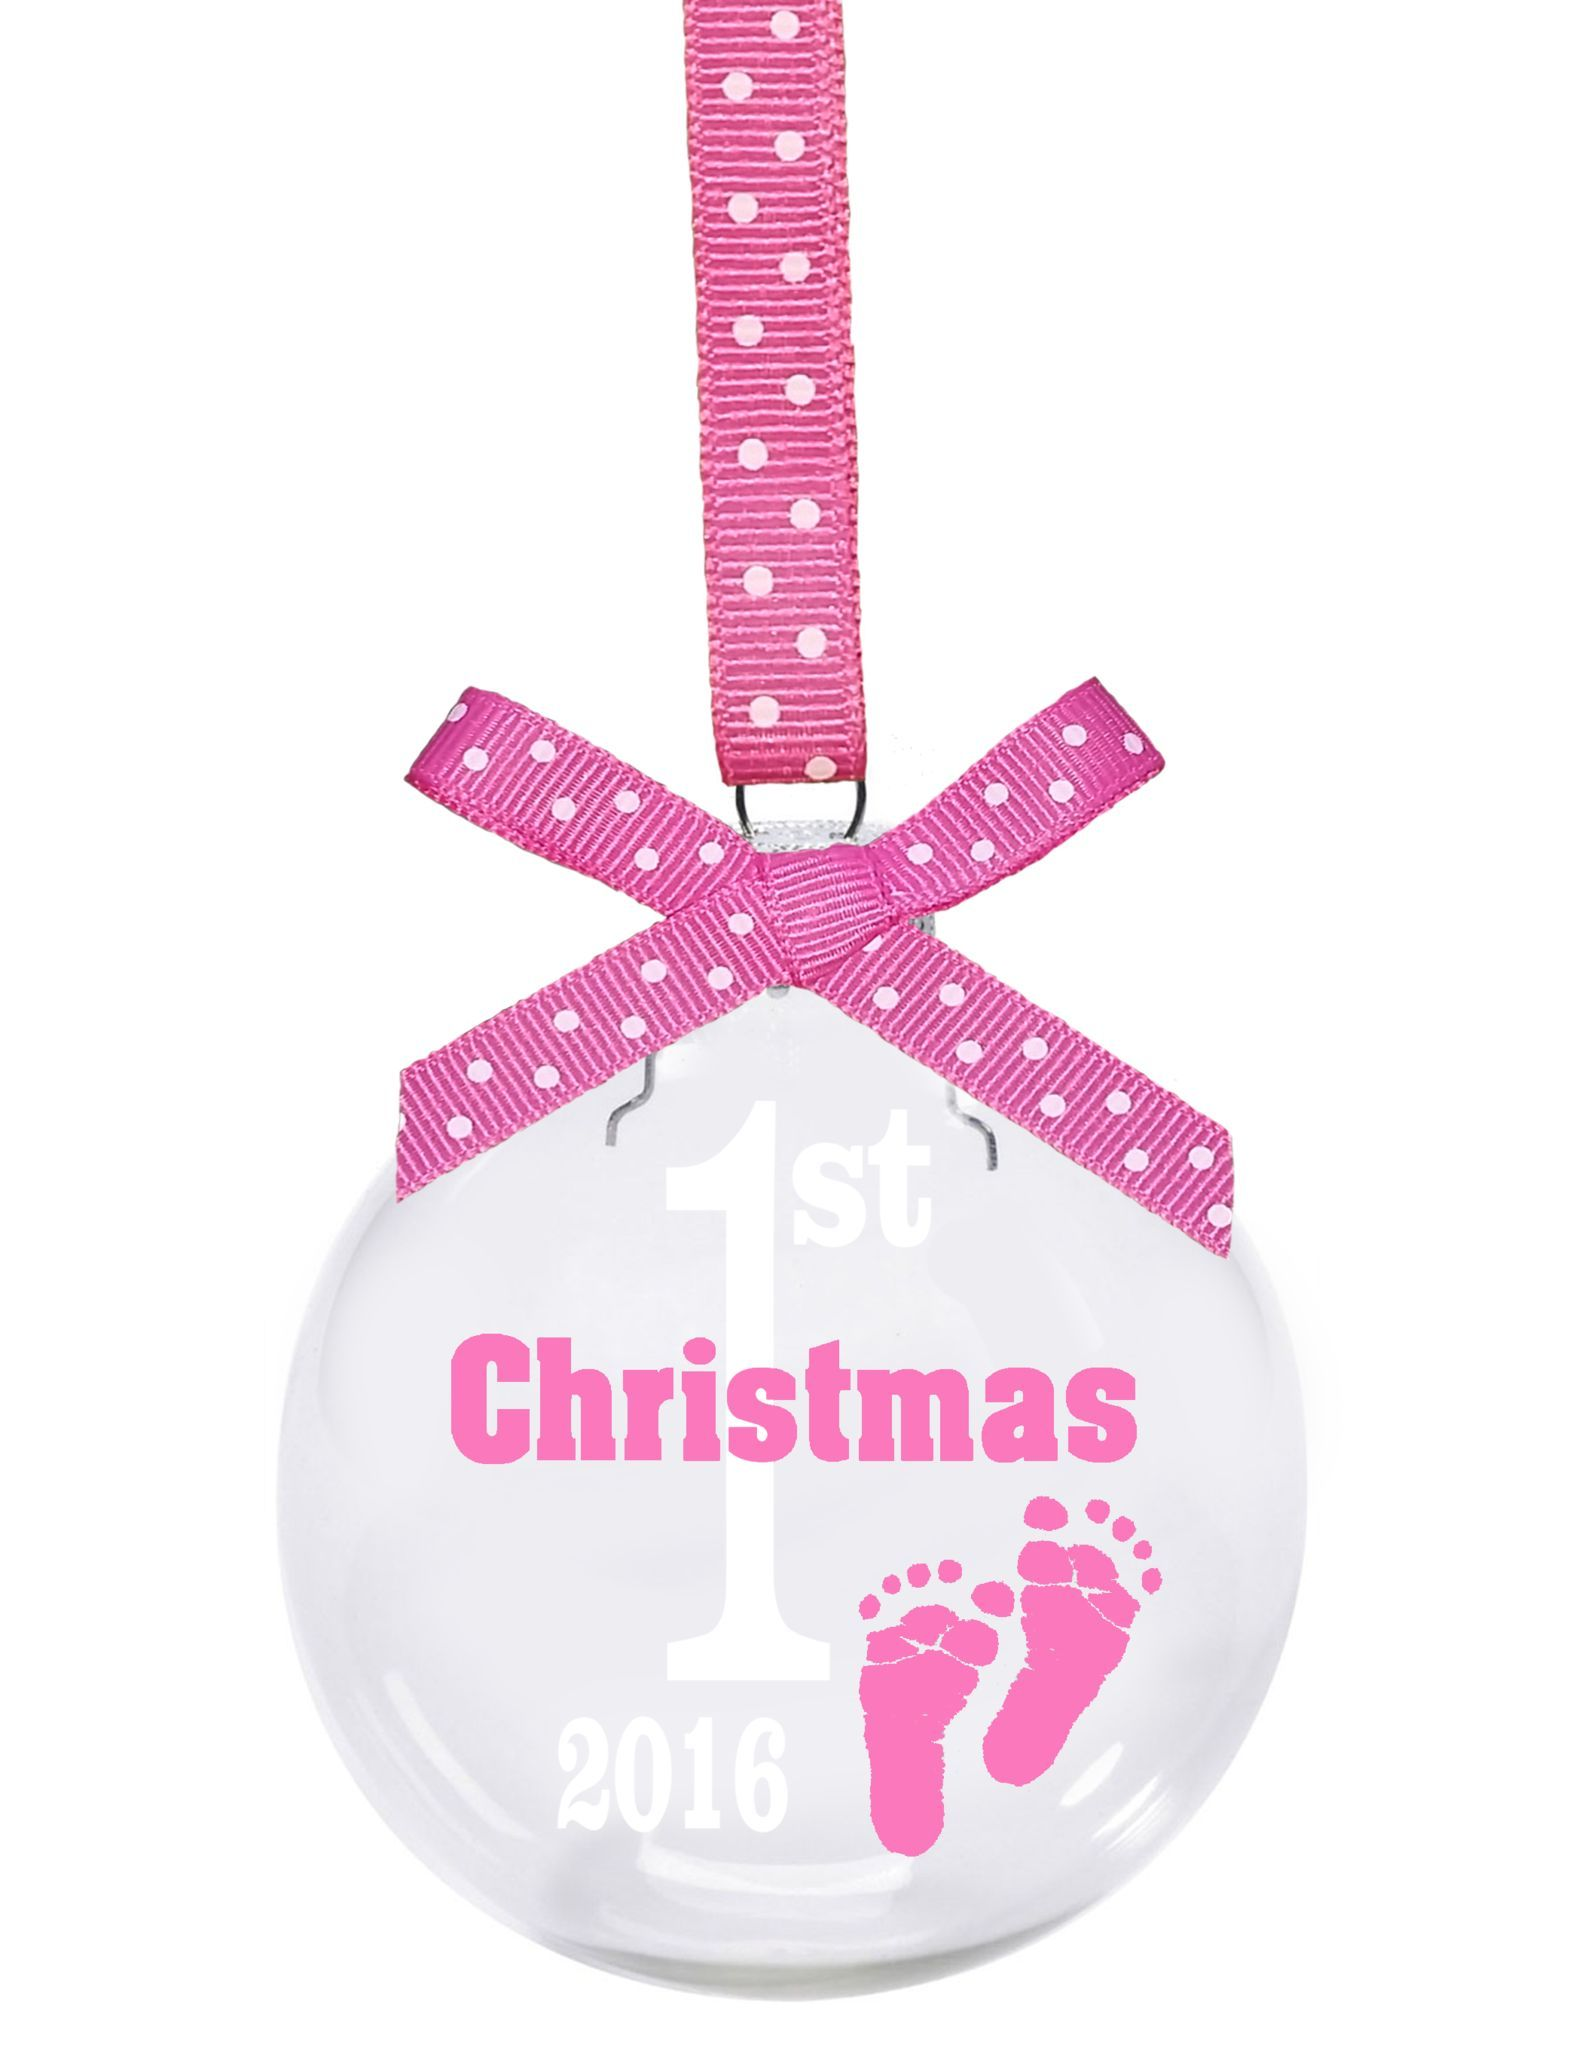 Babys First Christmas Glass Ball Christmas Ornament Is A 3 Glass Ornament With Babys First Christmas 2016 Design Floating Inside The Ornament